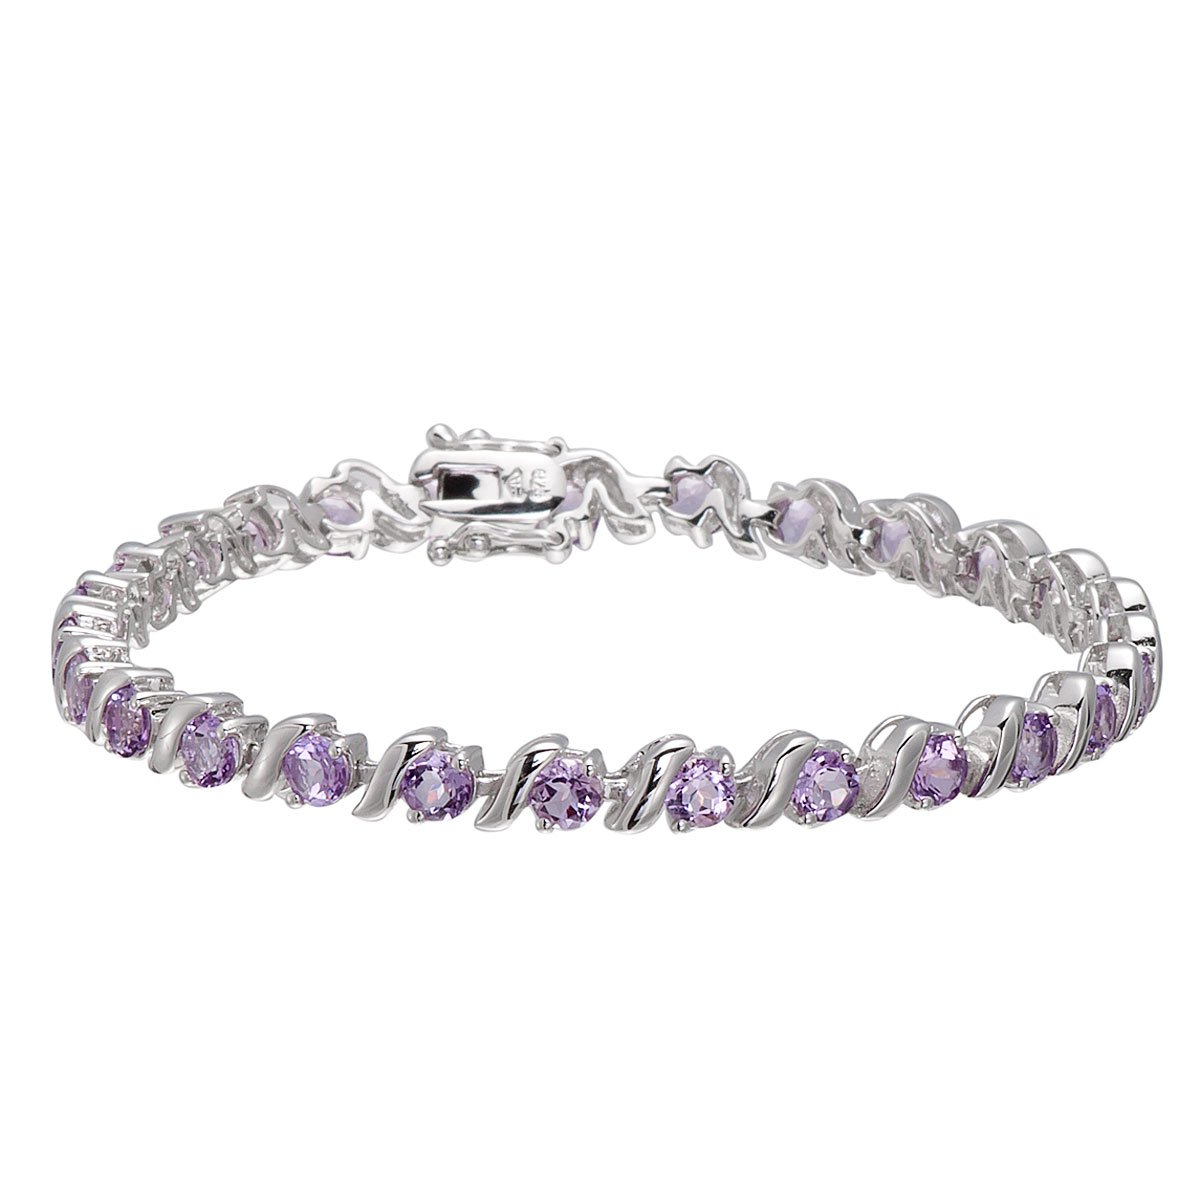 Round 4mm Genuine African Amethyst 6.34 Ct Sterling Silver ''S'' Link Bracelet 7.5 Inches by HUTANG JEWELRY (Image #2)